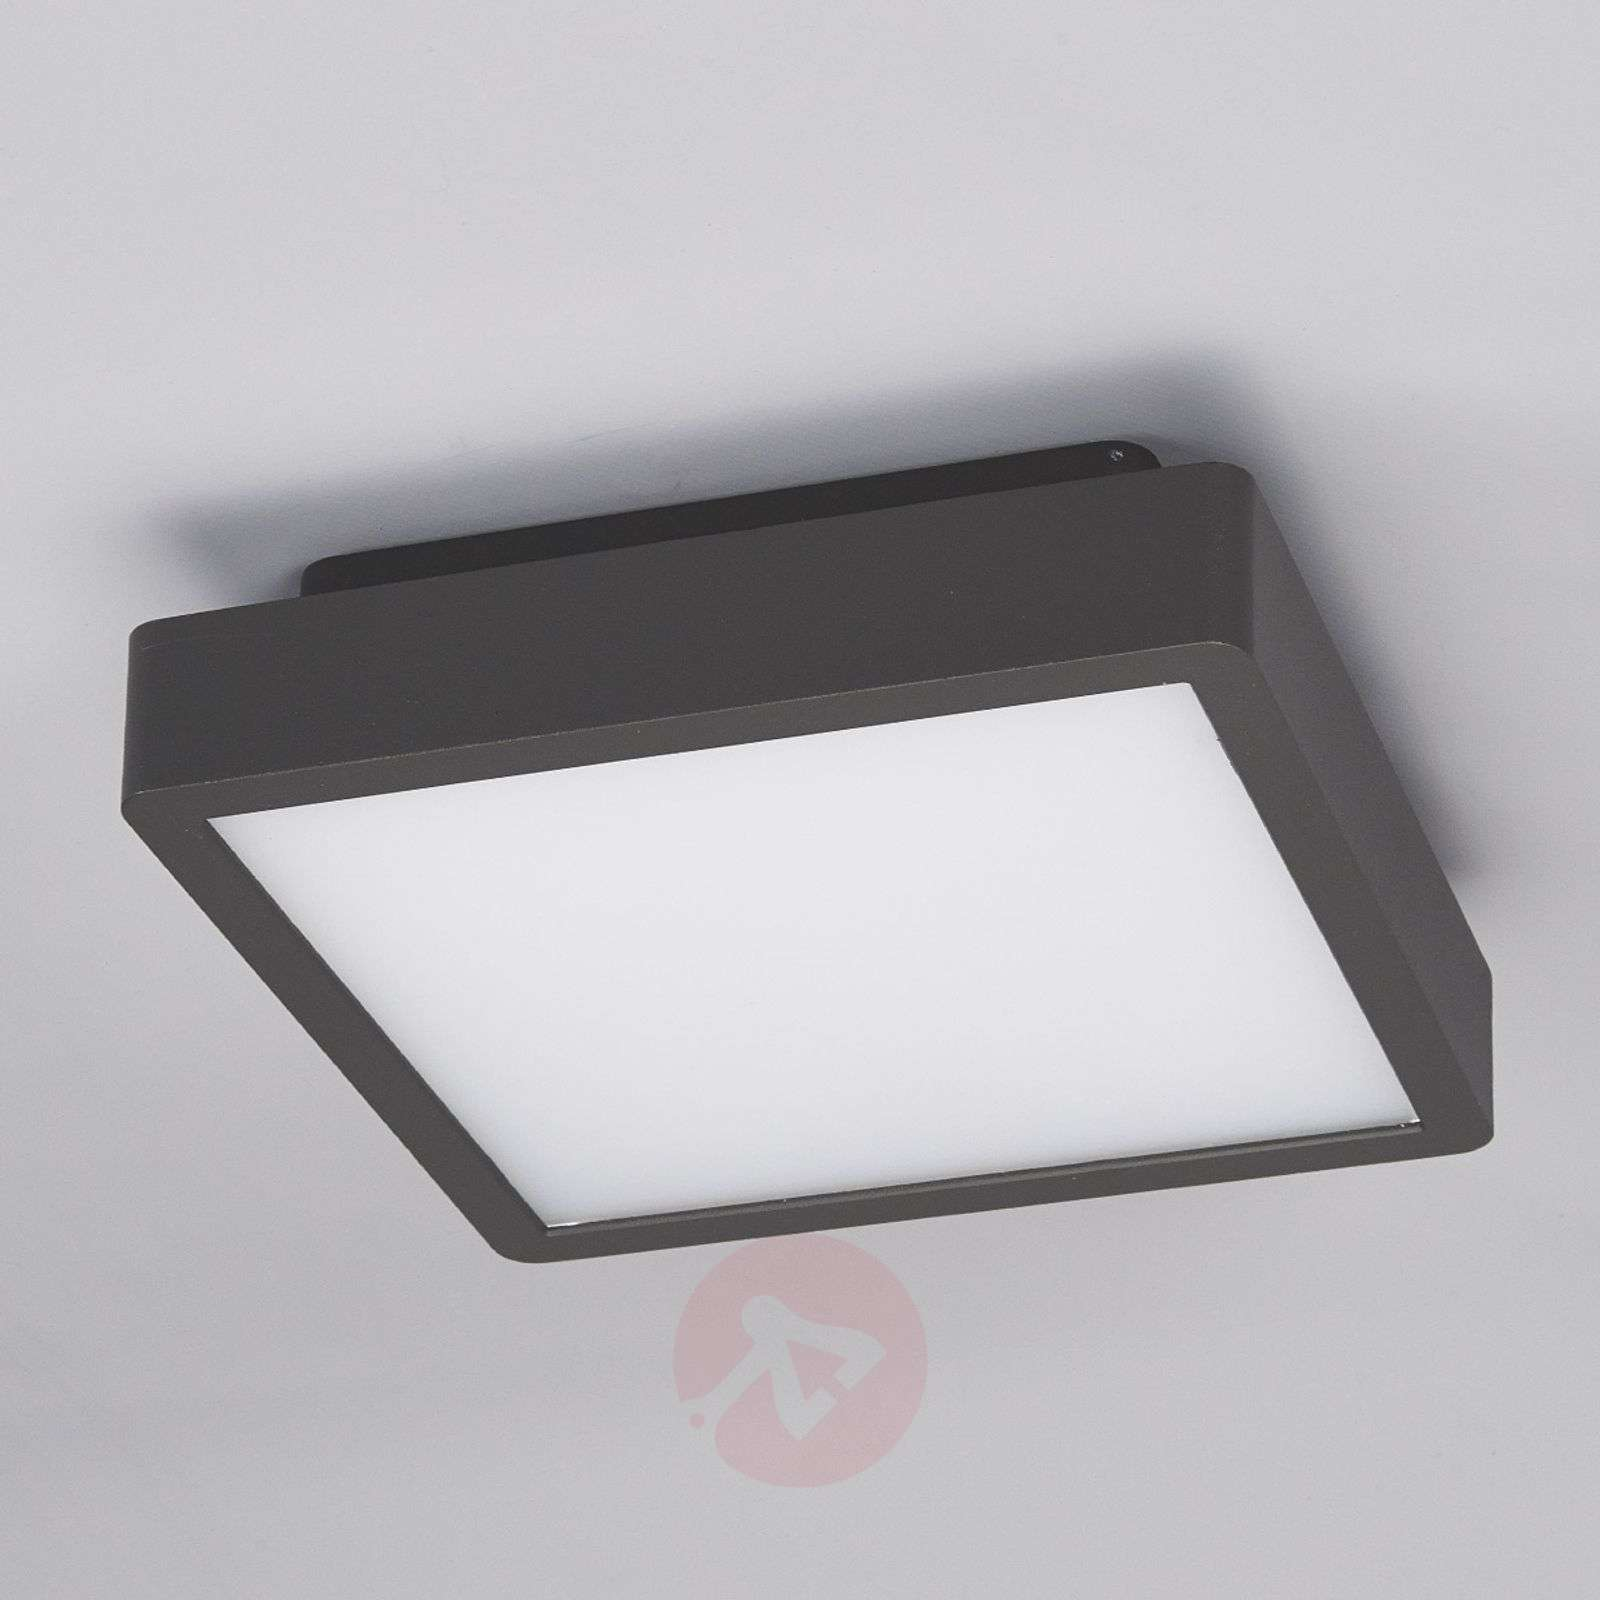 Rectangular led outdoor ceiling light talea lights rectangular led outdoor ceiling light talea 9616049 01 mozeypictures Image collections